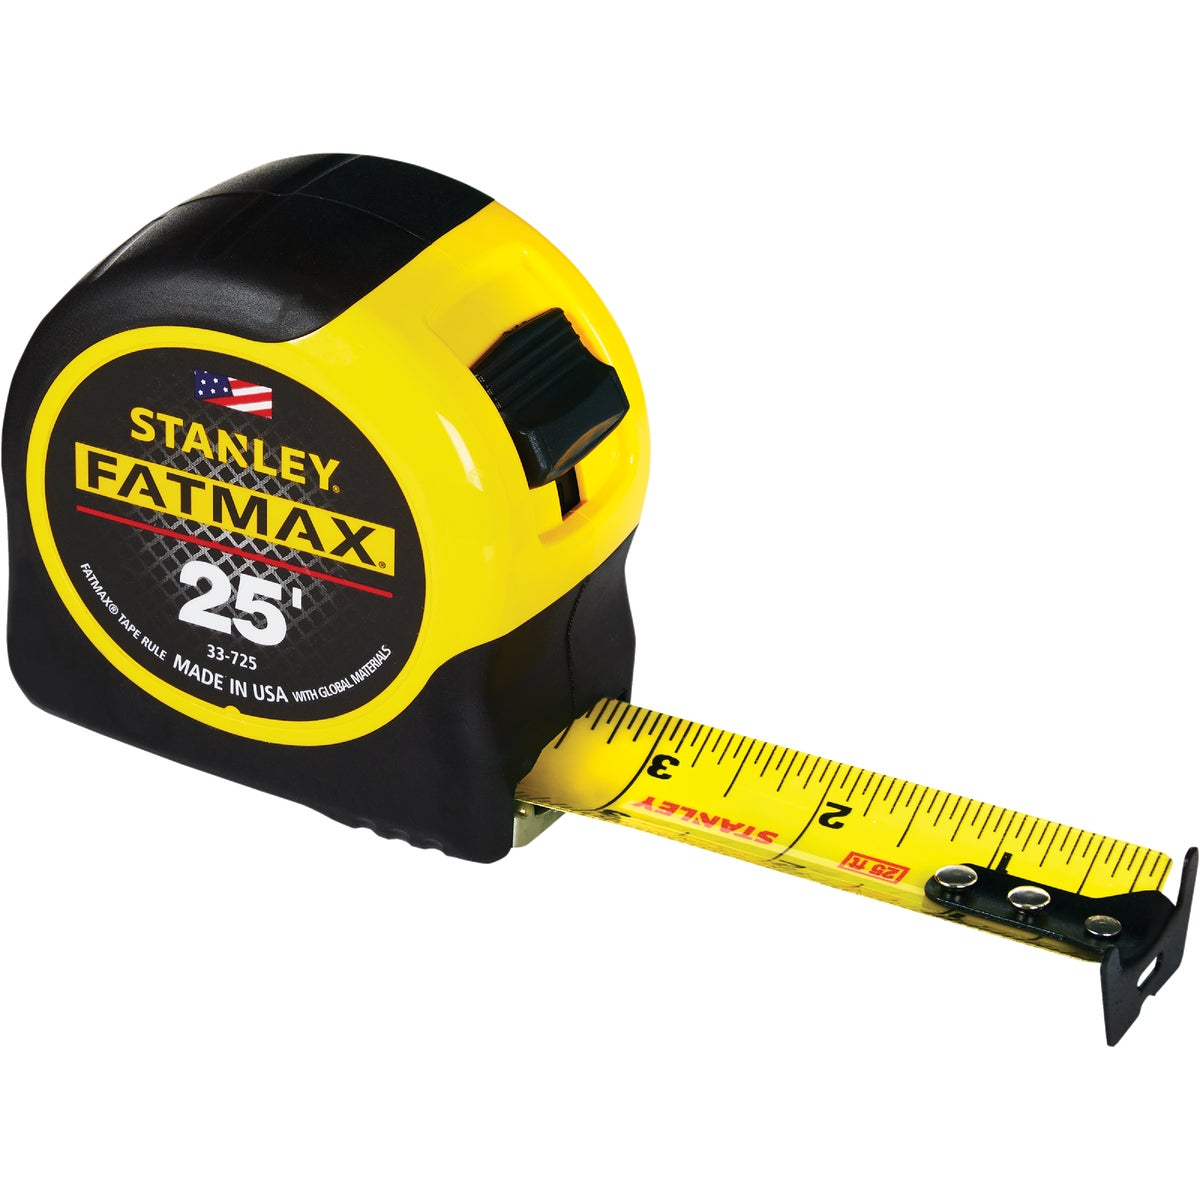 "1-1/4""X25' TAPE RULE - 33-725 by Stanley Tools"